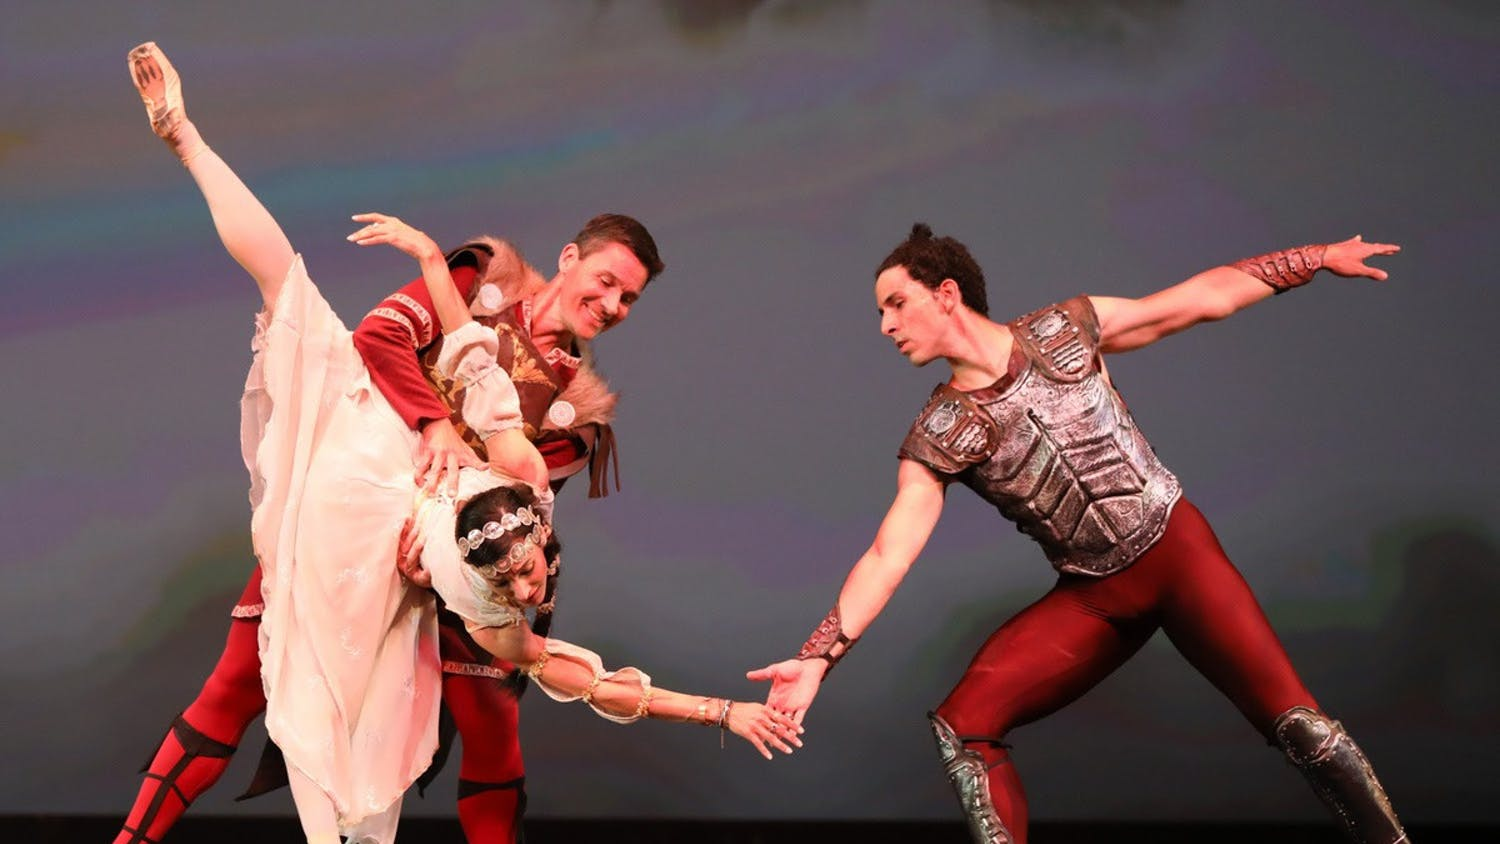 Jessie Dominguez  (left– Co-host of Dance Alive's new podcast), Tim Cannon (middle– First guest speaker on the podcast), and Roberto Vega (right) dancing at a Dance Alive performance.  (Photo by Ani Collier)